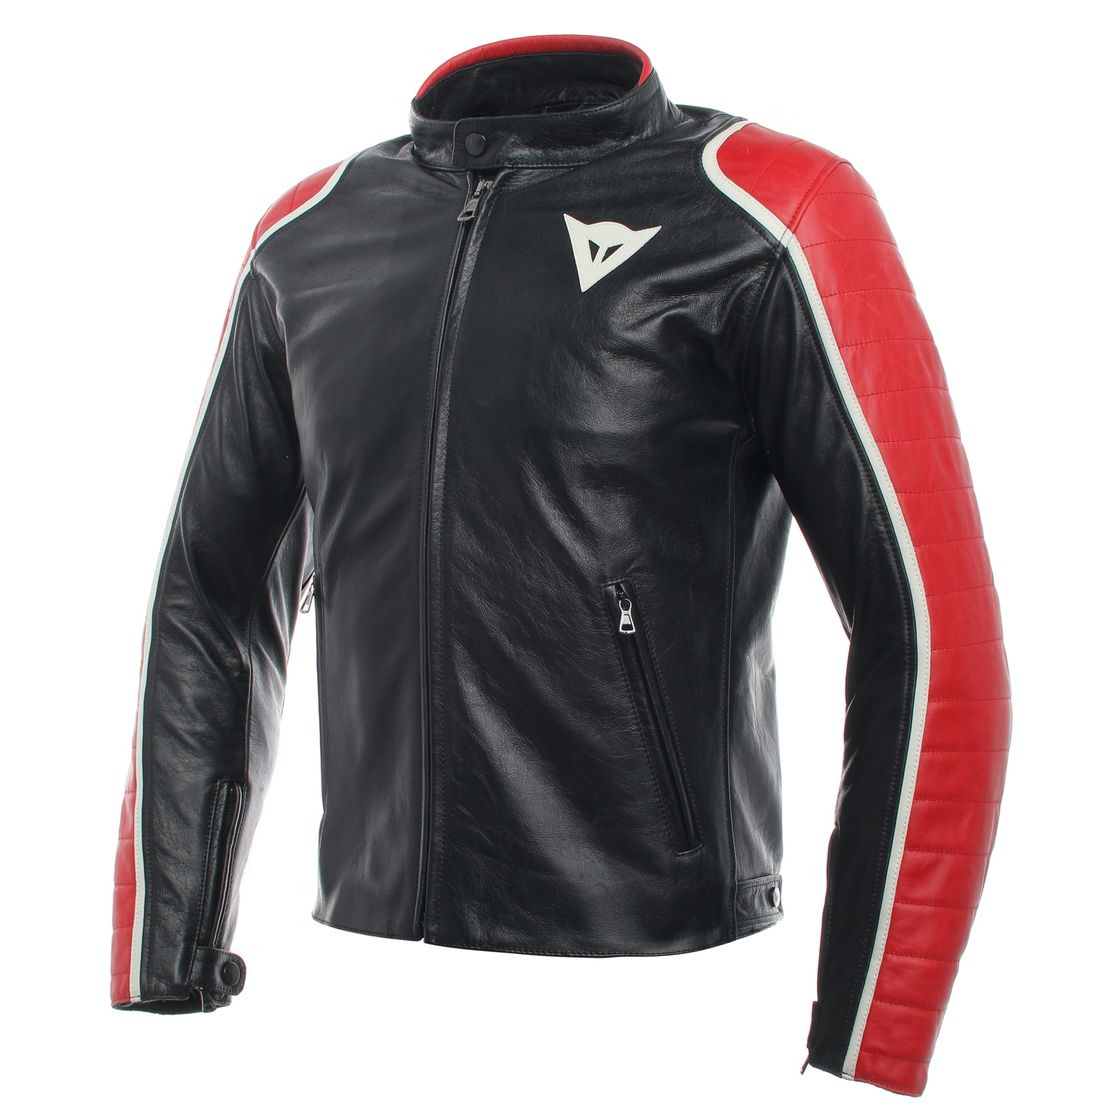 Blouson Dainese SPECIALE